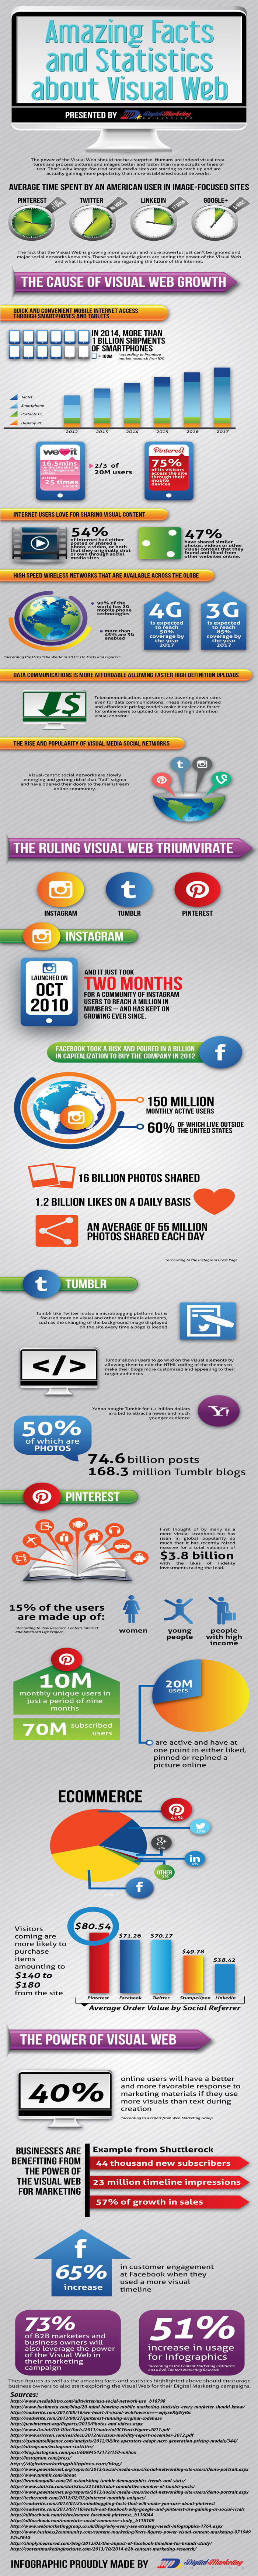 Amazing Facts and Statistics about Visual Web